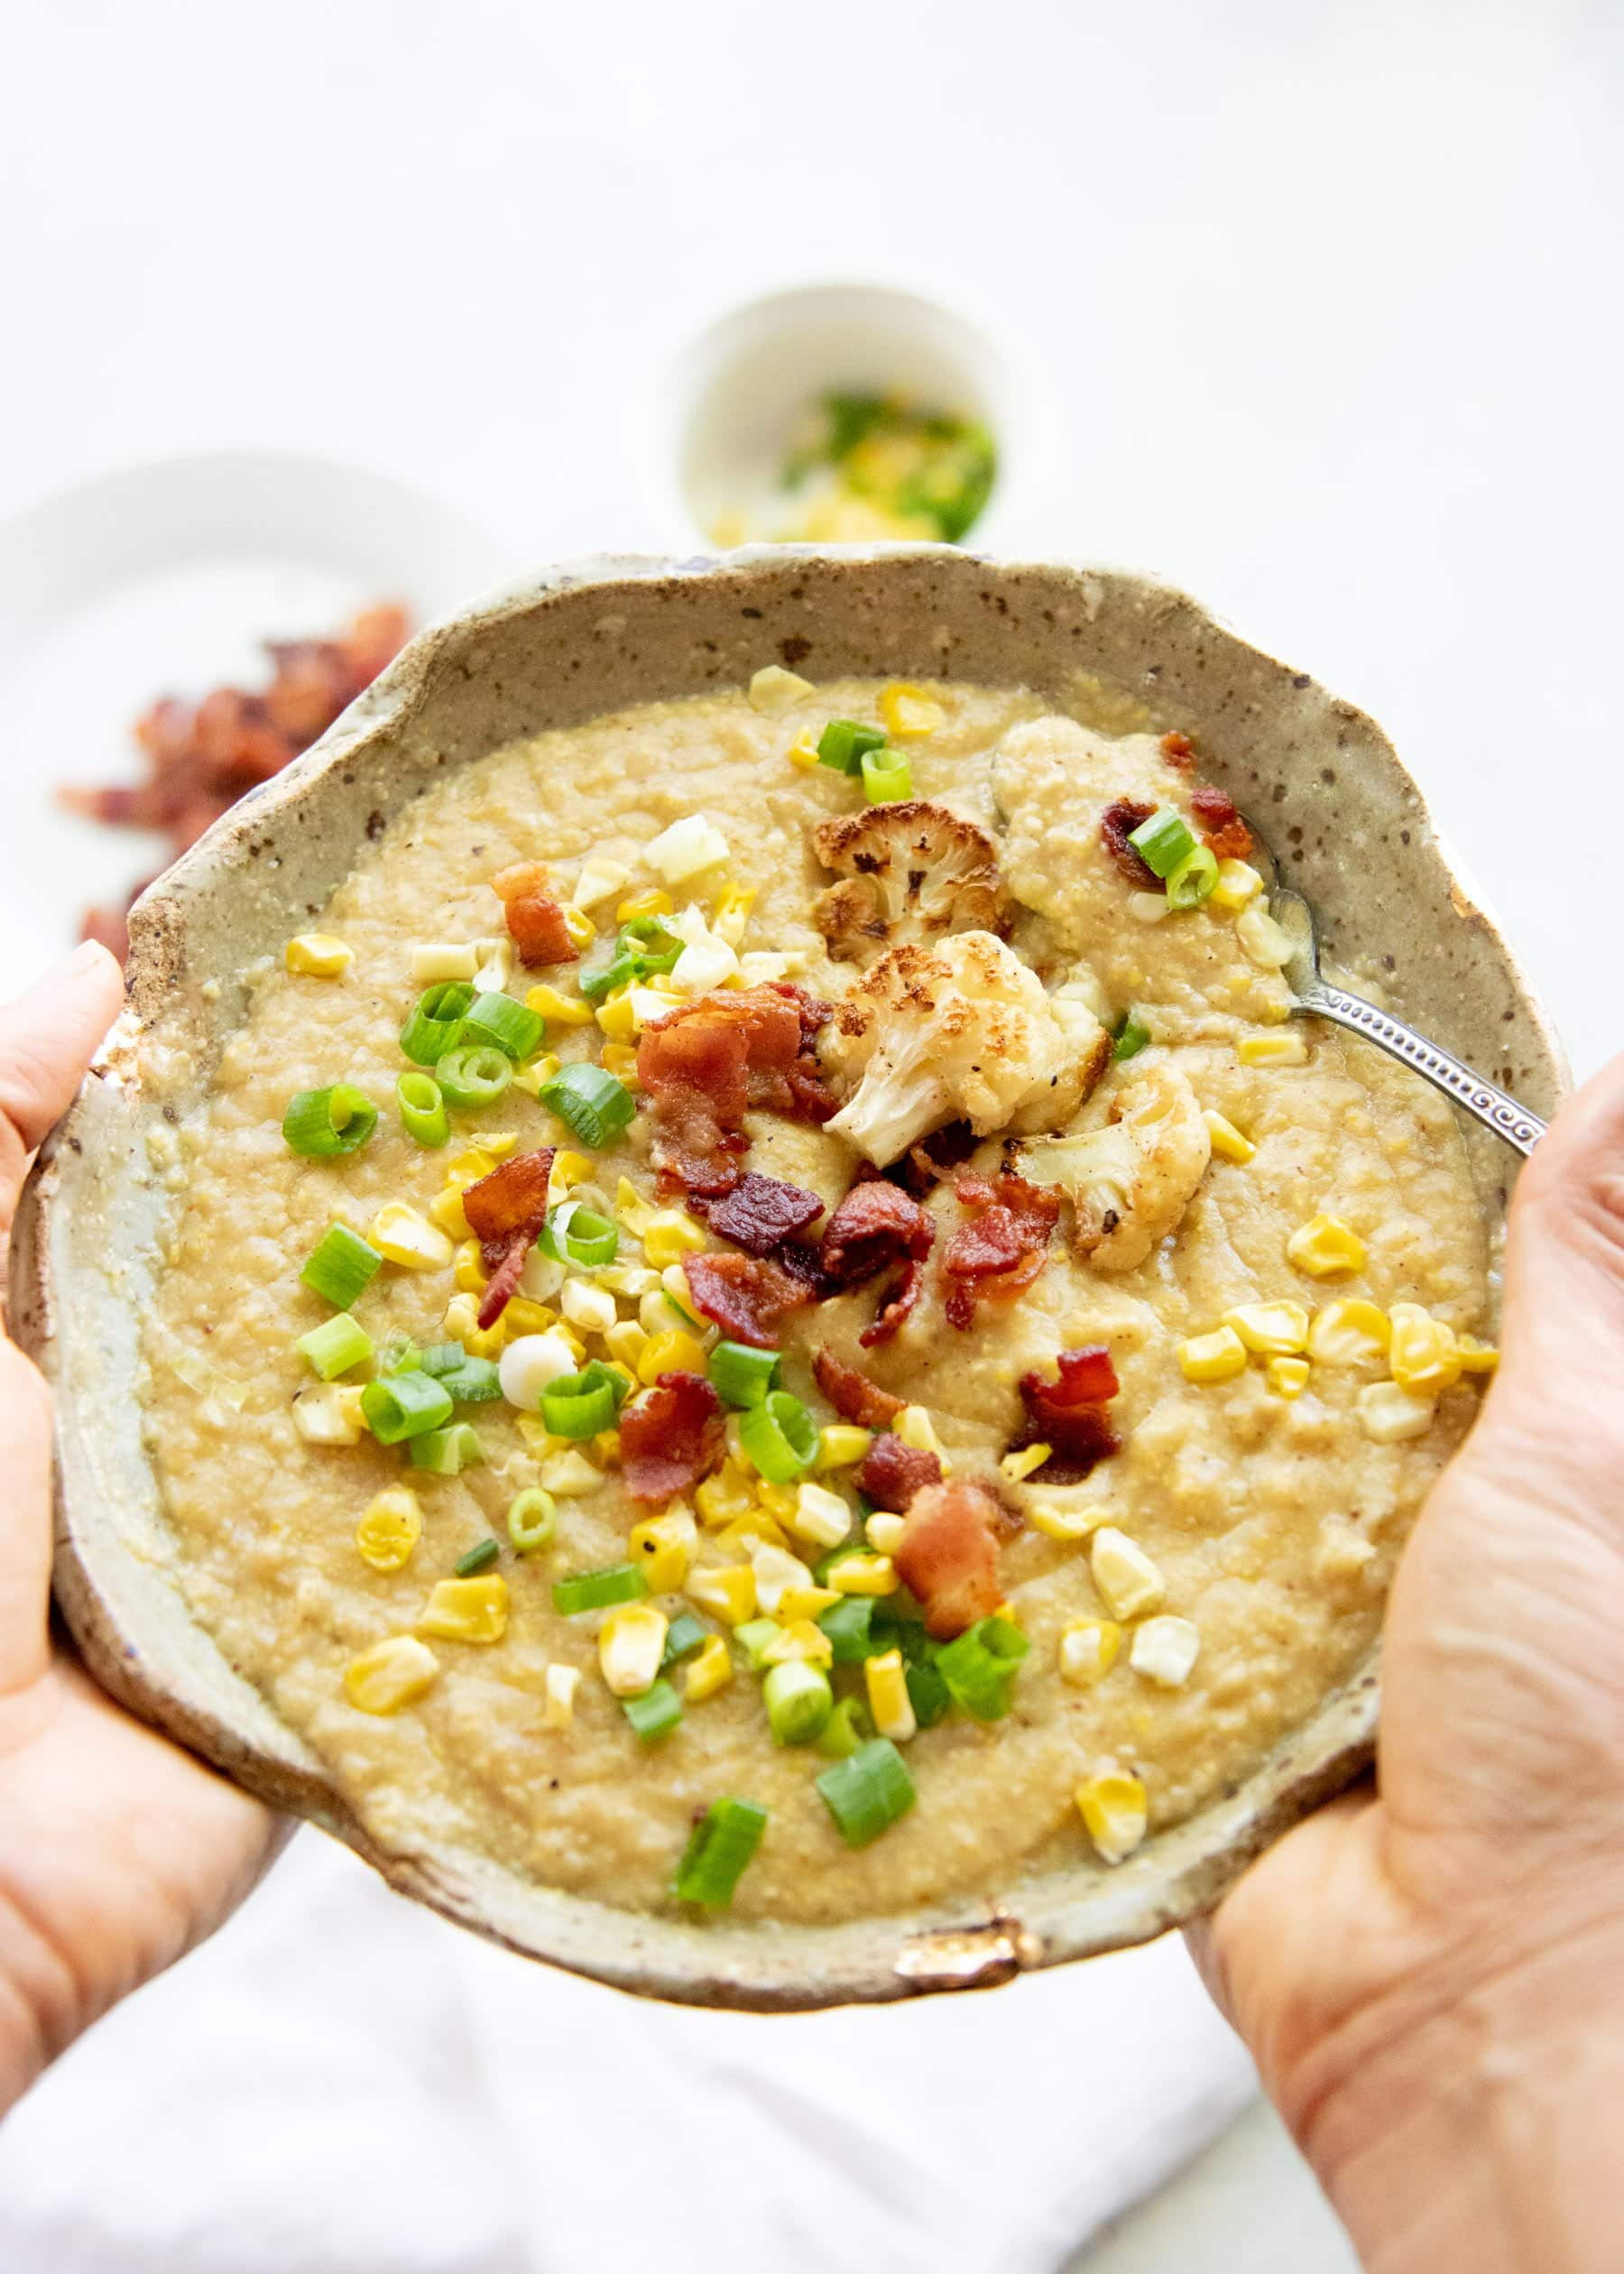 Hands holding a bowl full of Roasted Corn and Cauliflower Chowder, topped with corn, green onions, and bacon